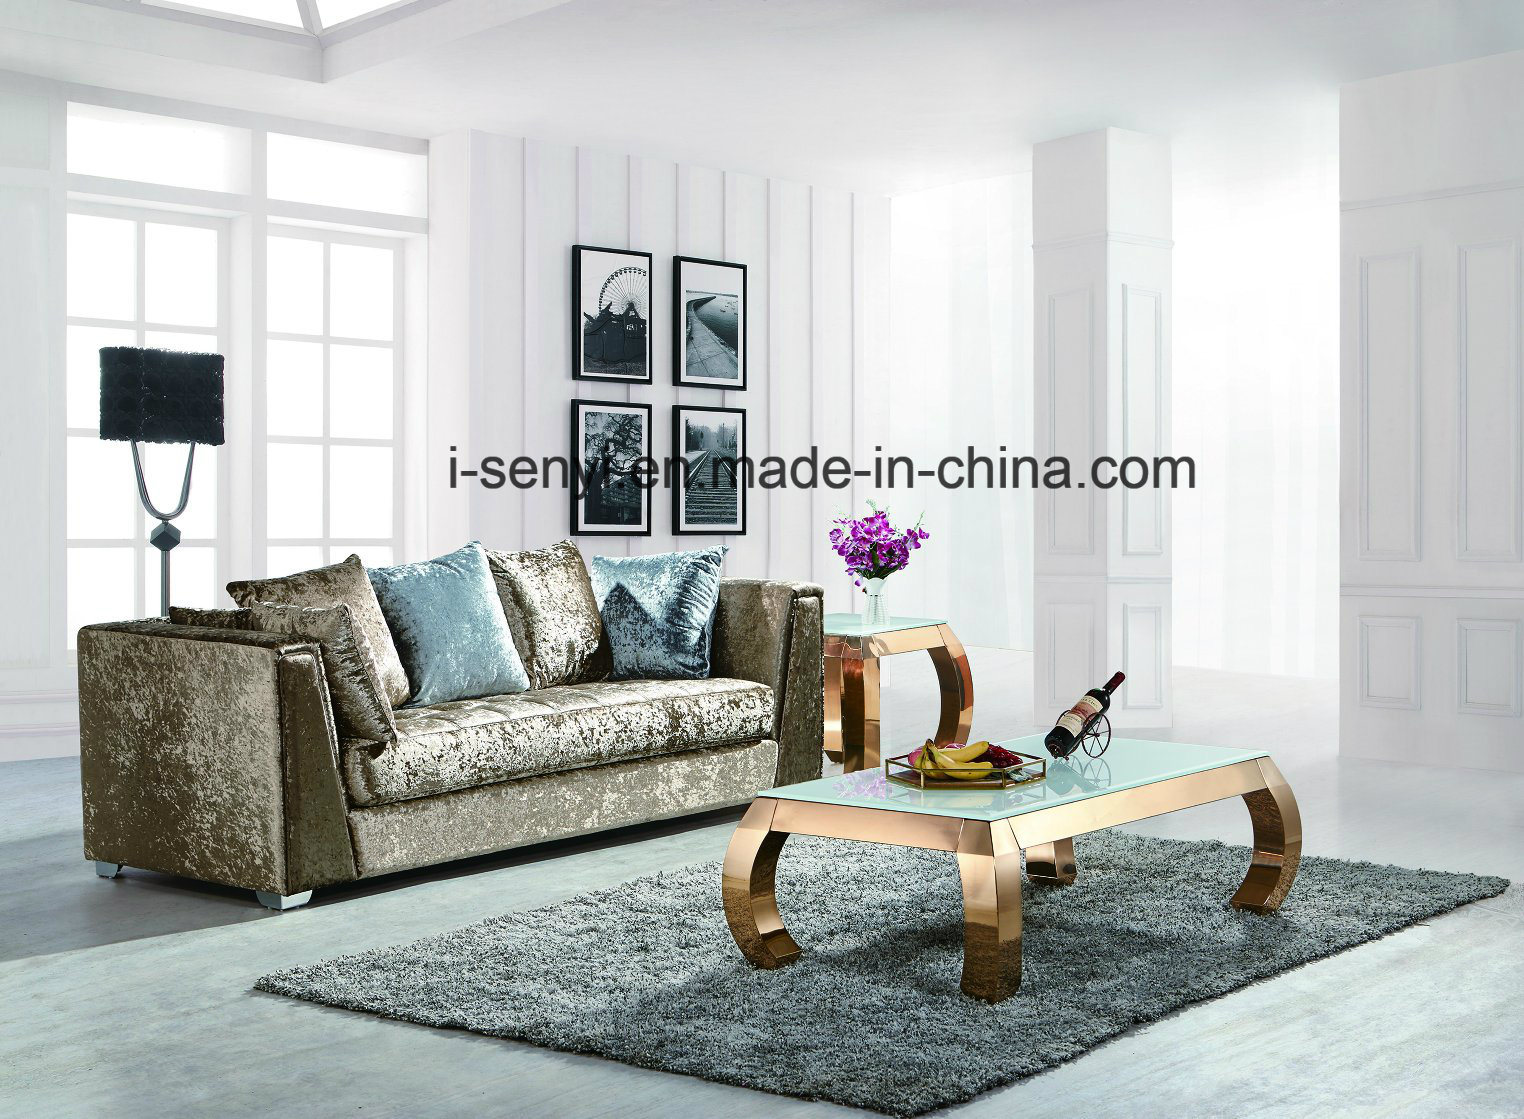 China Modern Italian Living Room Furniture Hotel Reception Sofa ...